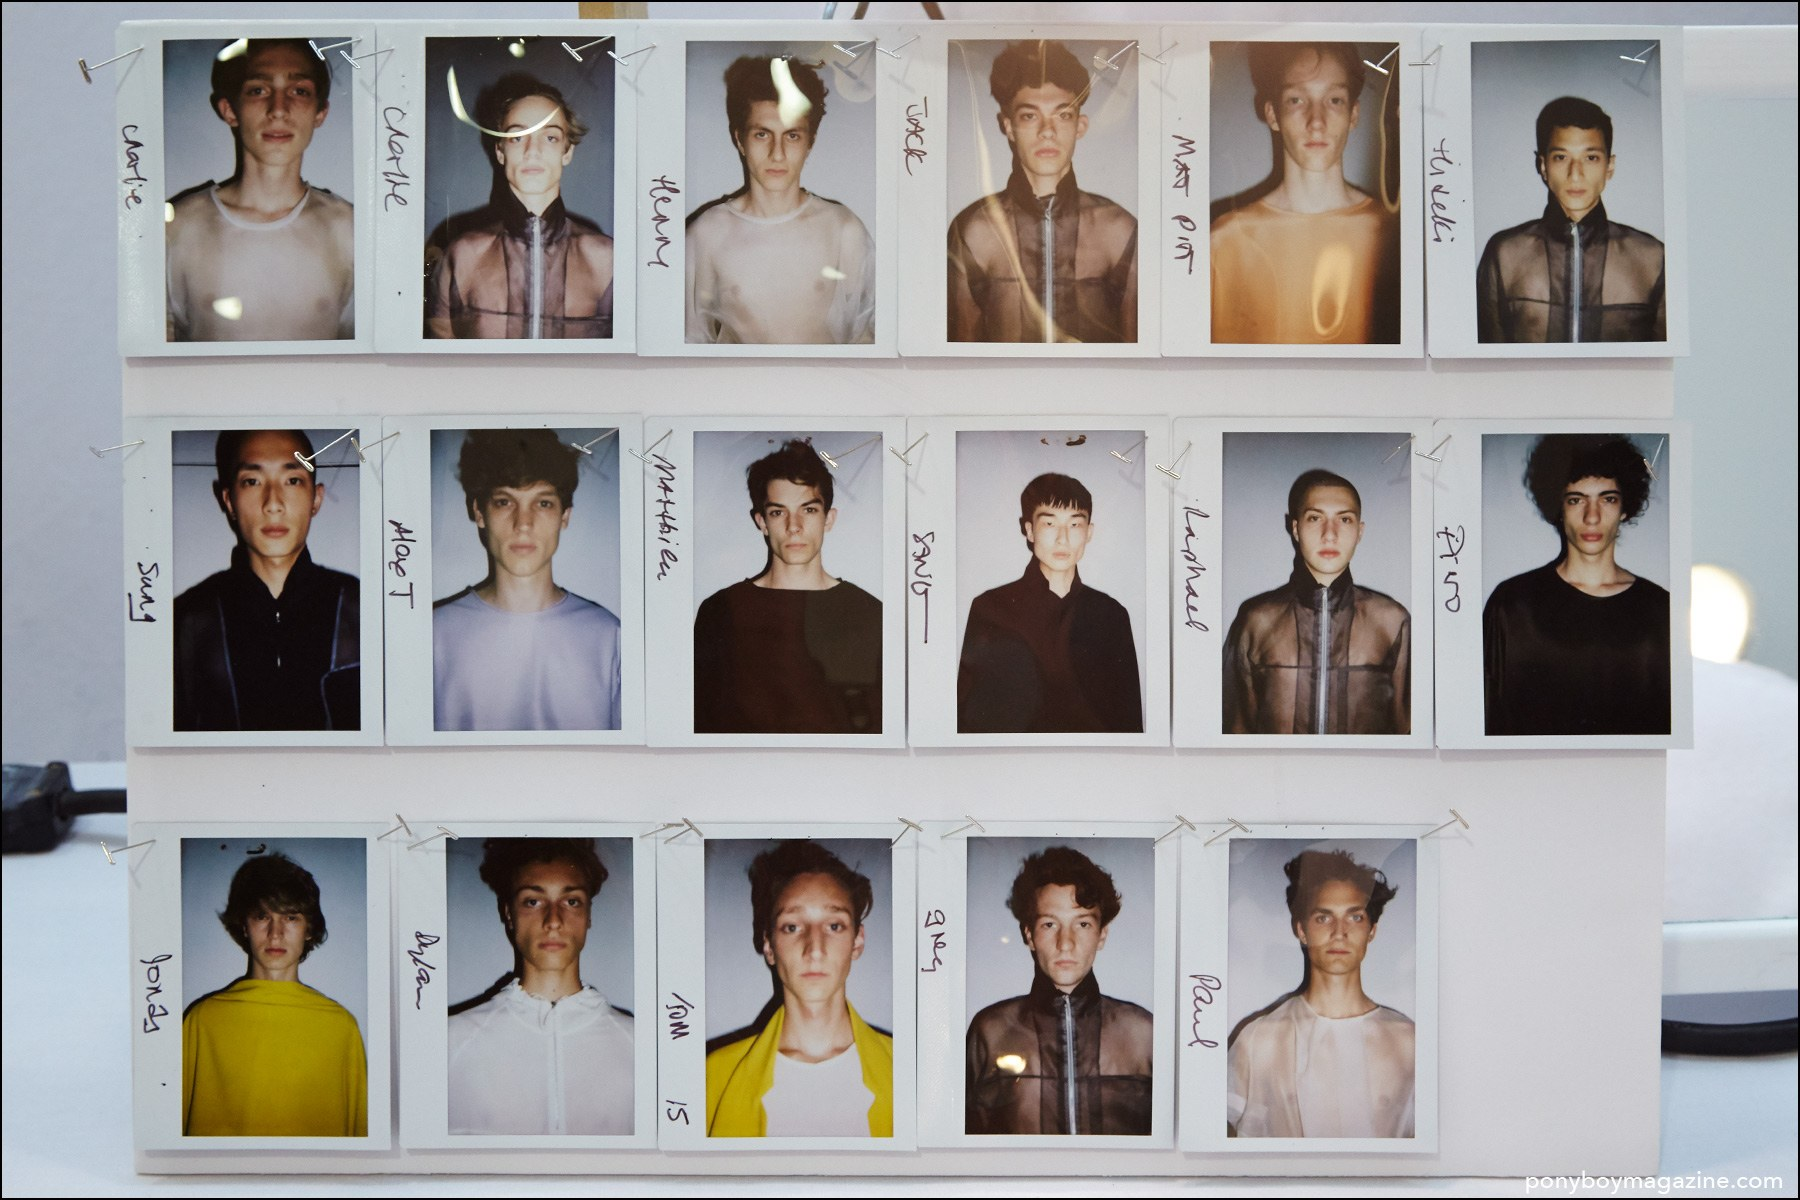 Polaroids of male models, backstage at Duckie Brown Spring/Summer 2016 menswear show. Photograph by Alexander Thompson for Ponyboy magazine NY.